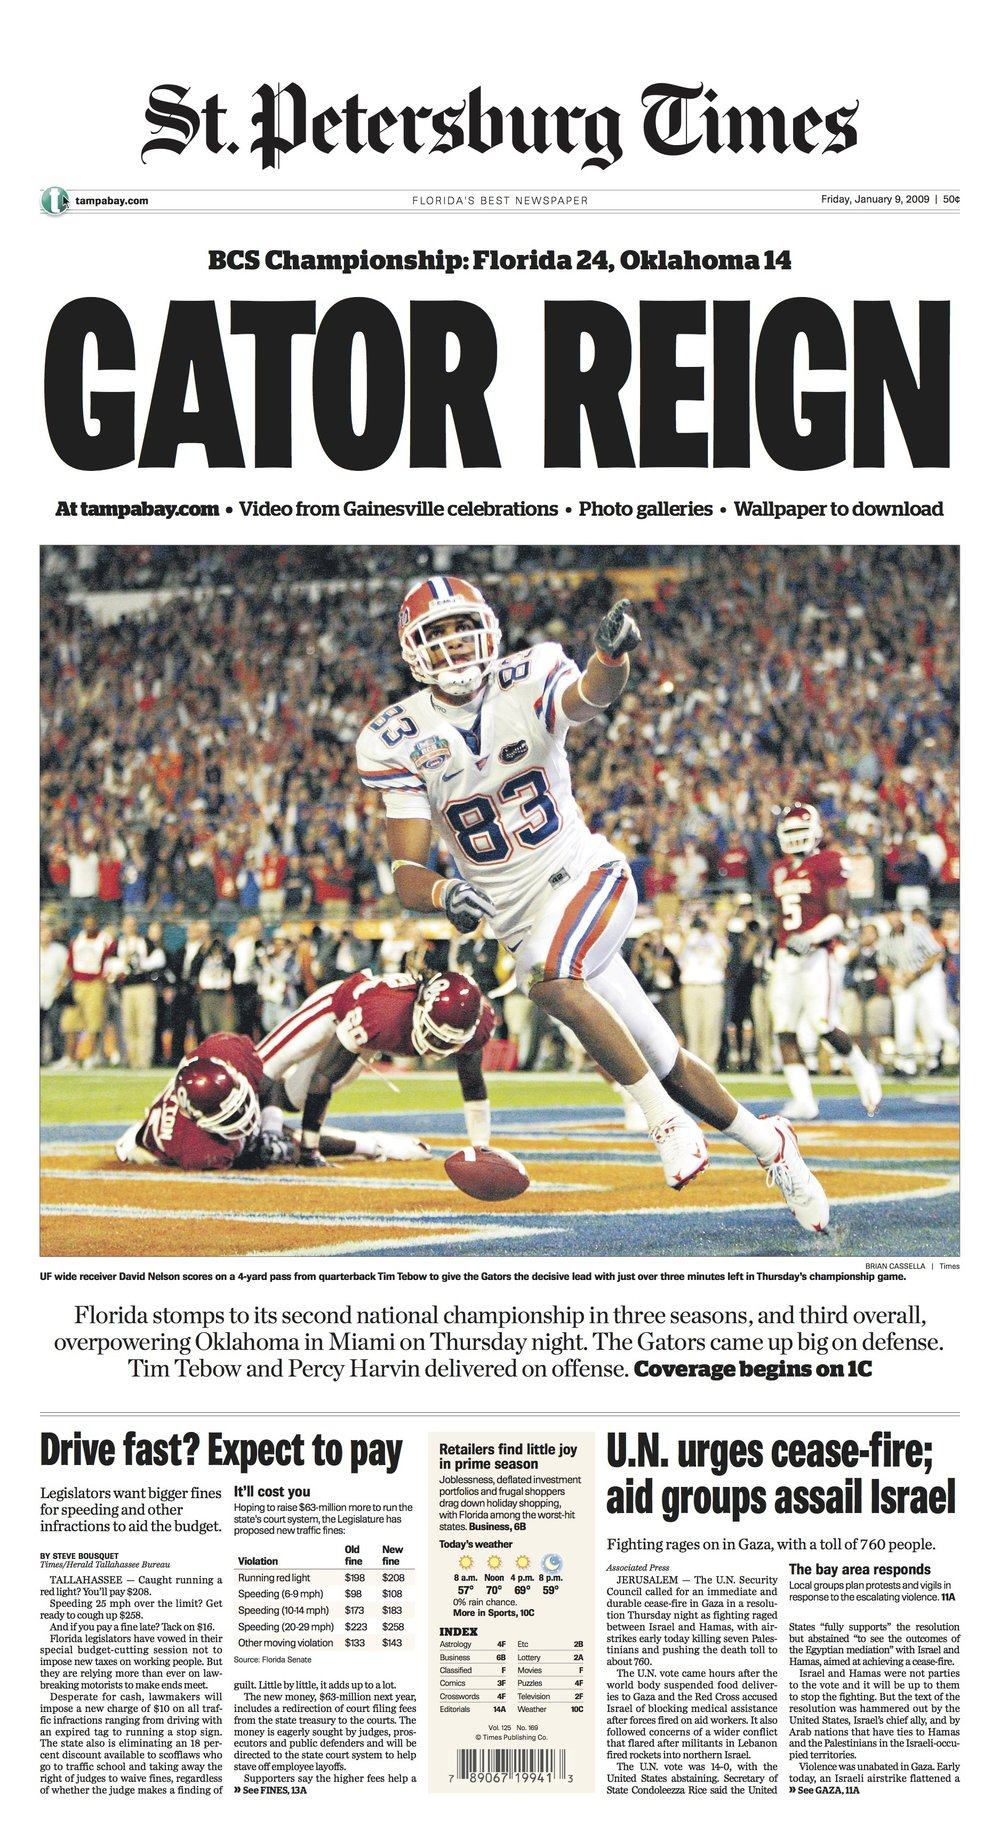 Gators_2008_season_national_title.jpg